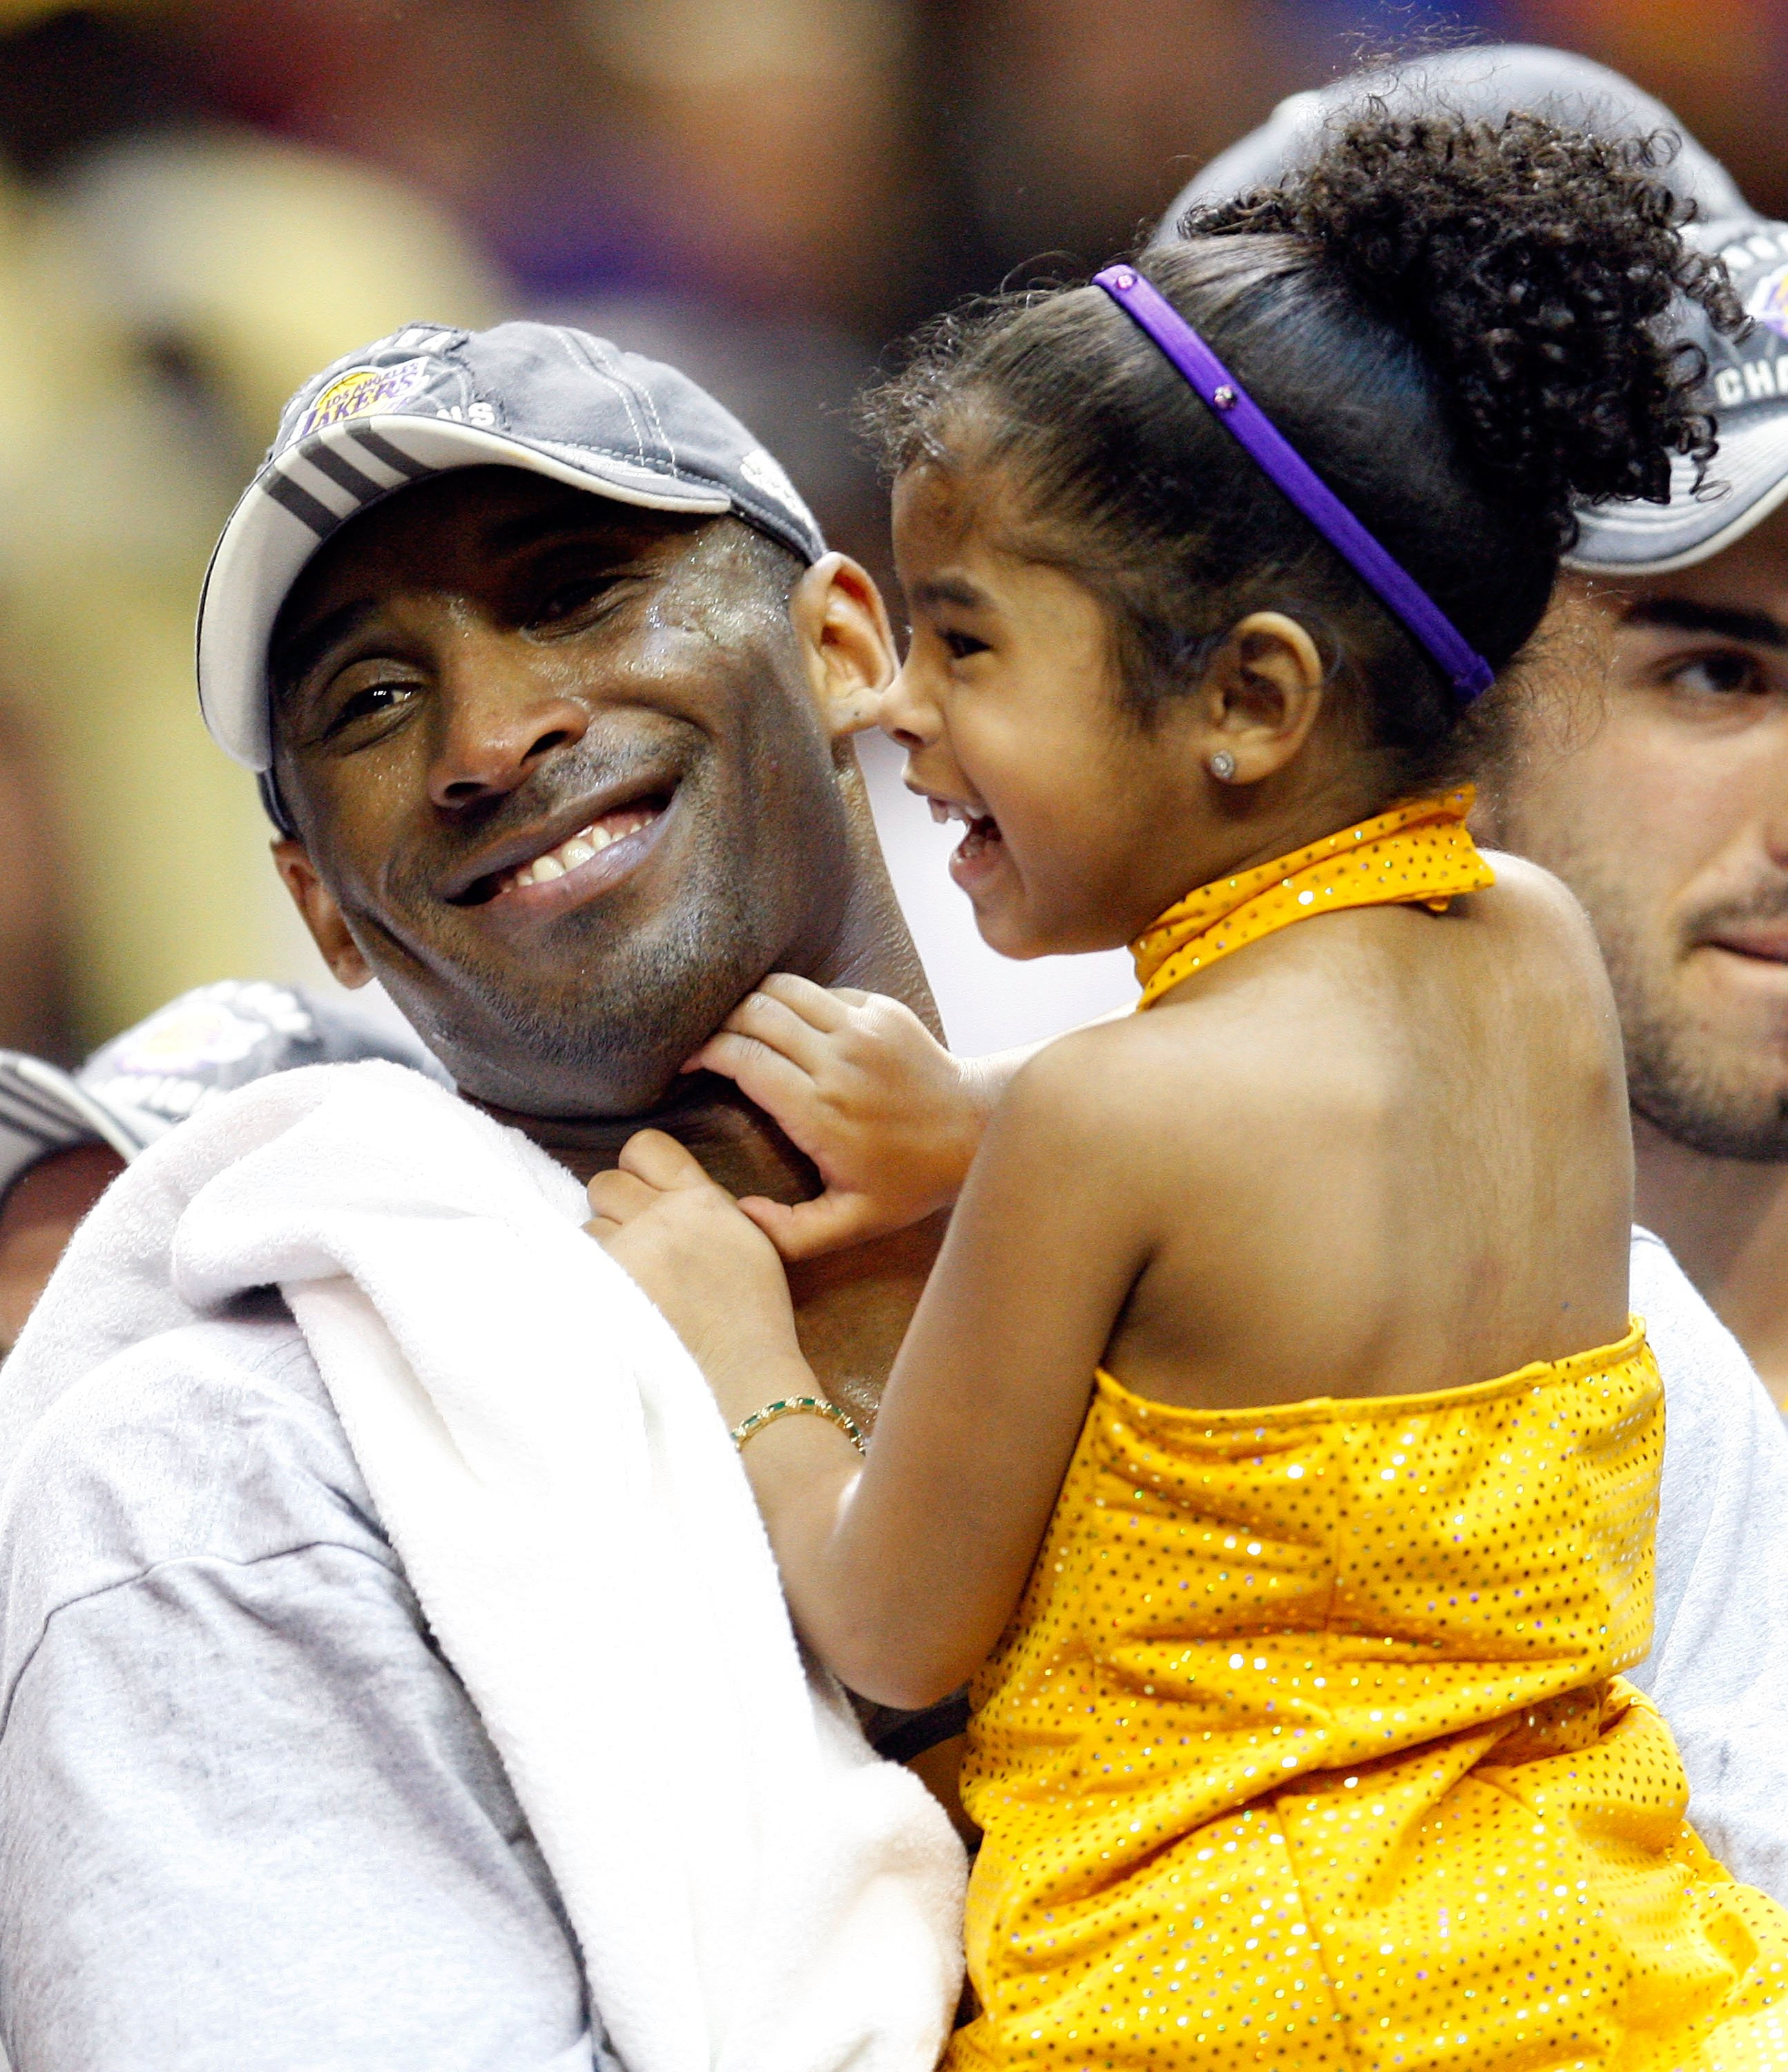 Image Source: Getty Images/Kobe Bryant with baby Gigi